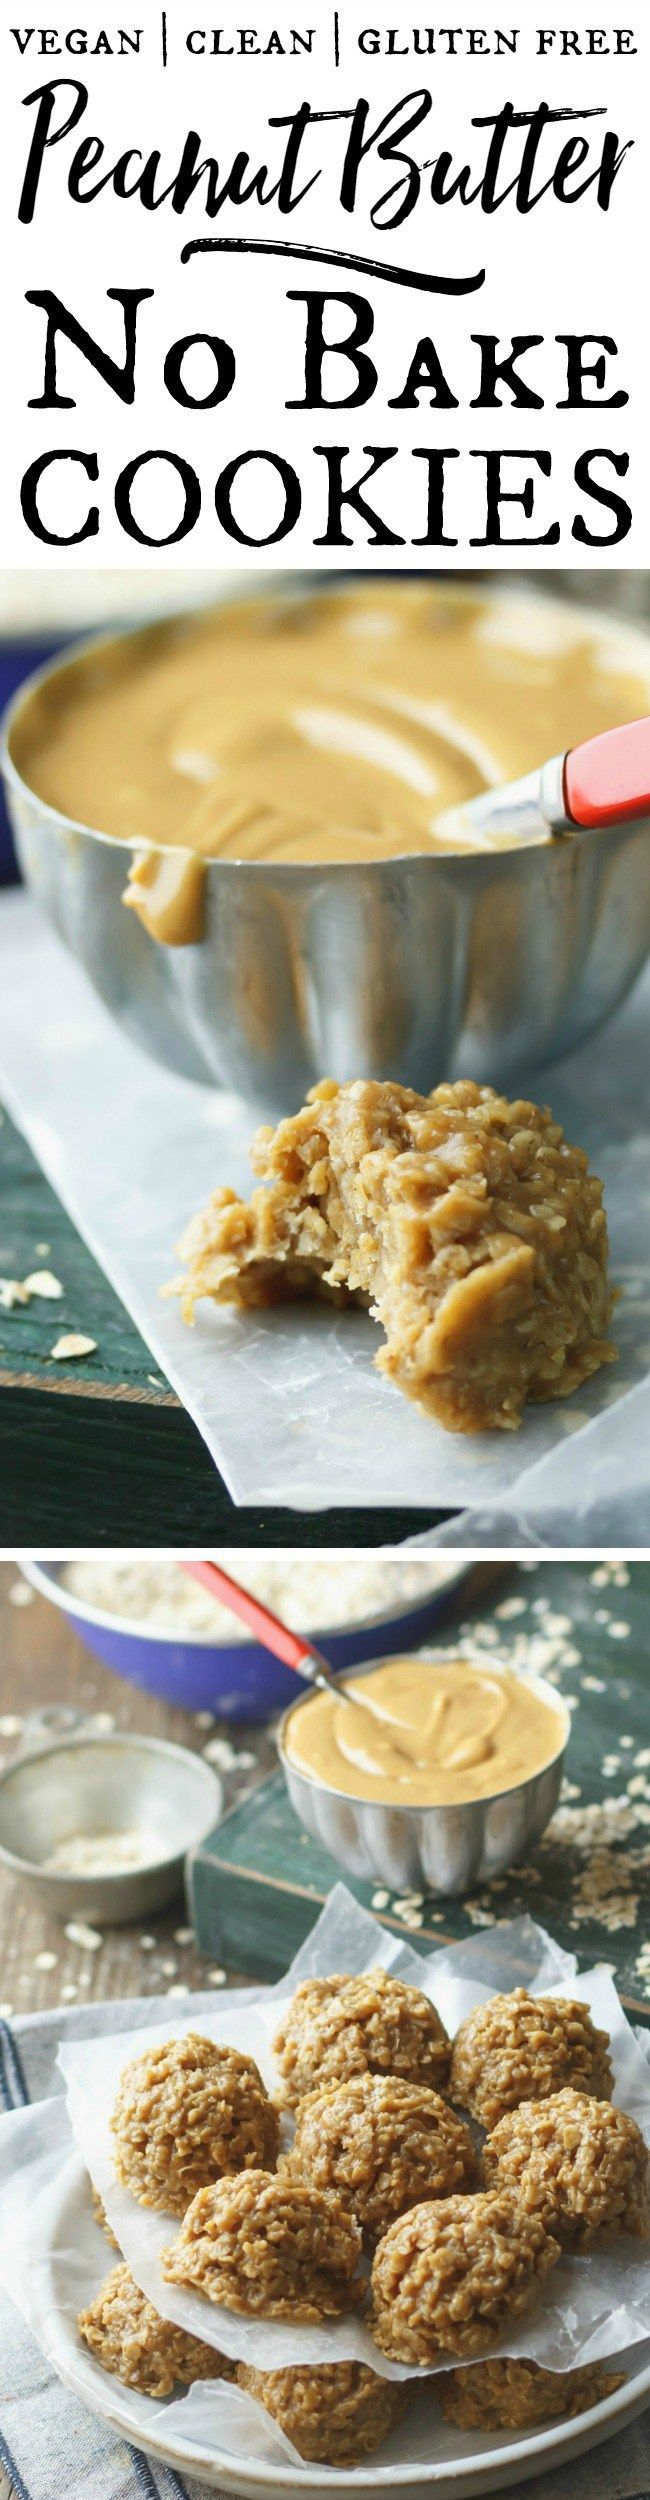 Fudgy Peanut Butter No-Bake Cookies - the no-bake taste you love, but better. These are made with whole, vegan ingredients and they're thick, rich, fudgy and AMAZING!